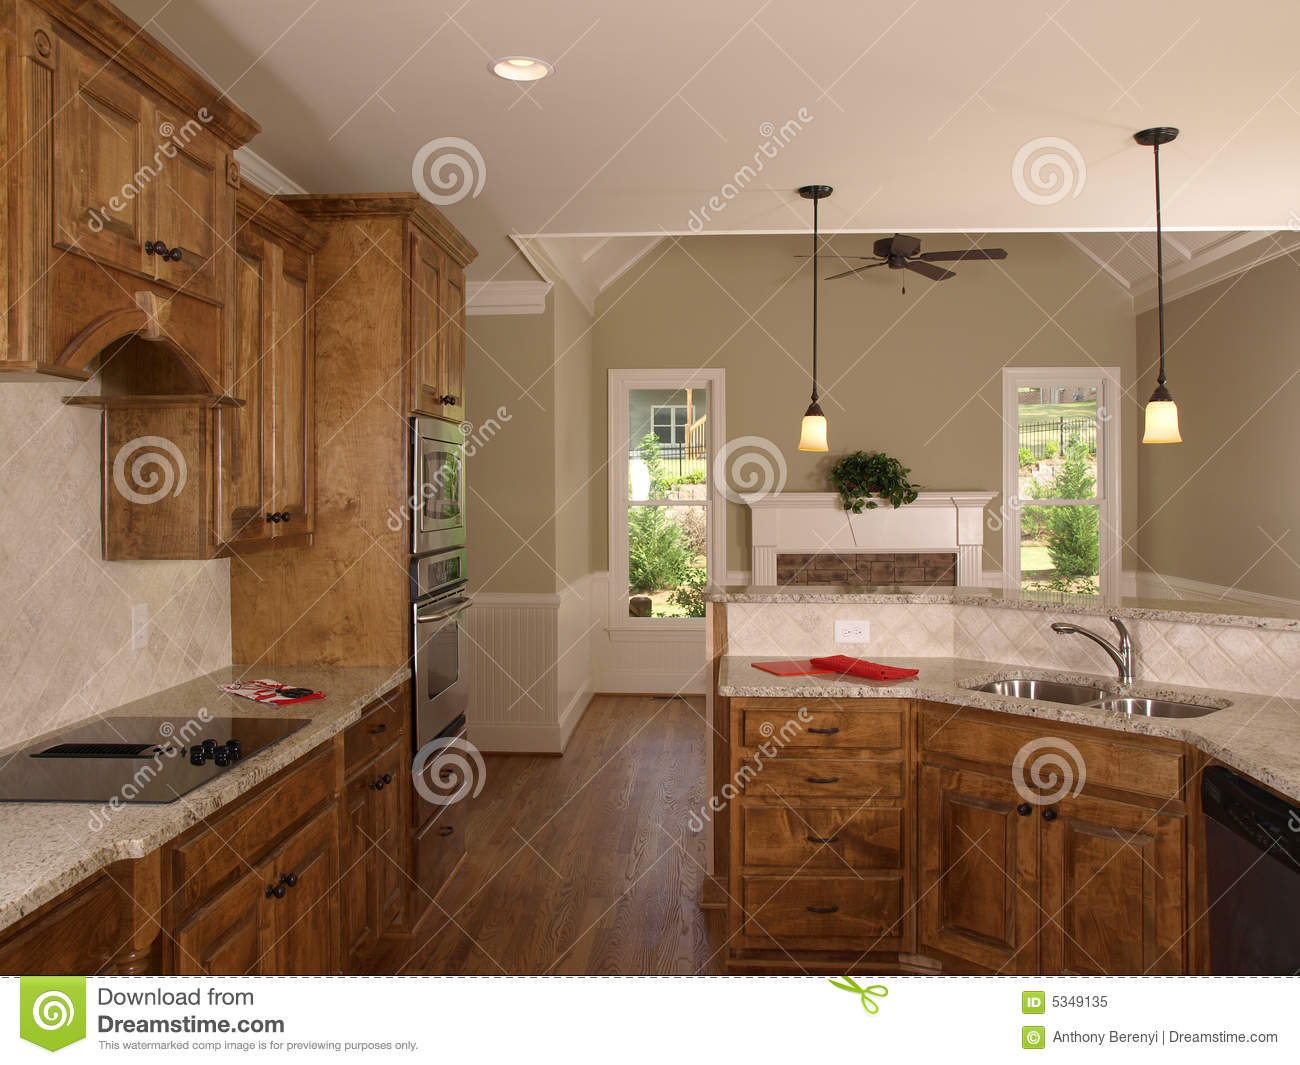 Luxury model home maple kitchen royalty free stock photo for Luxury home models